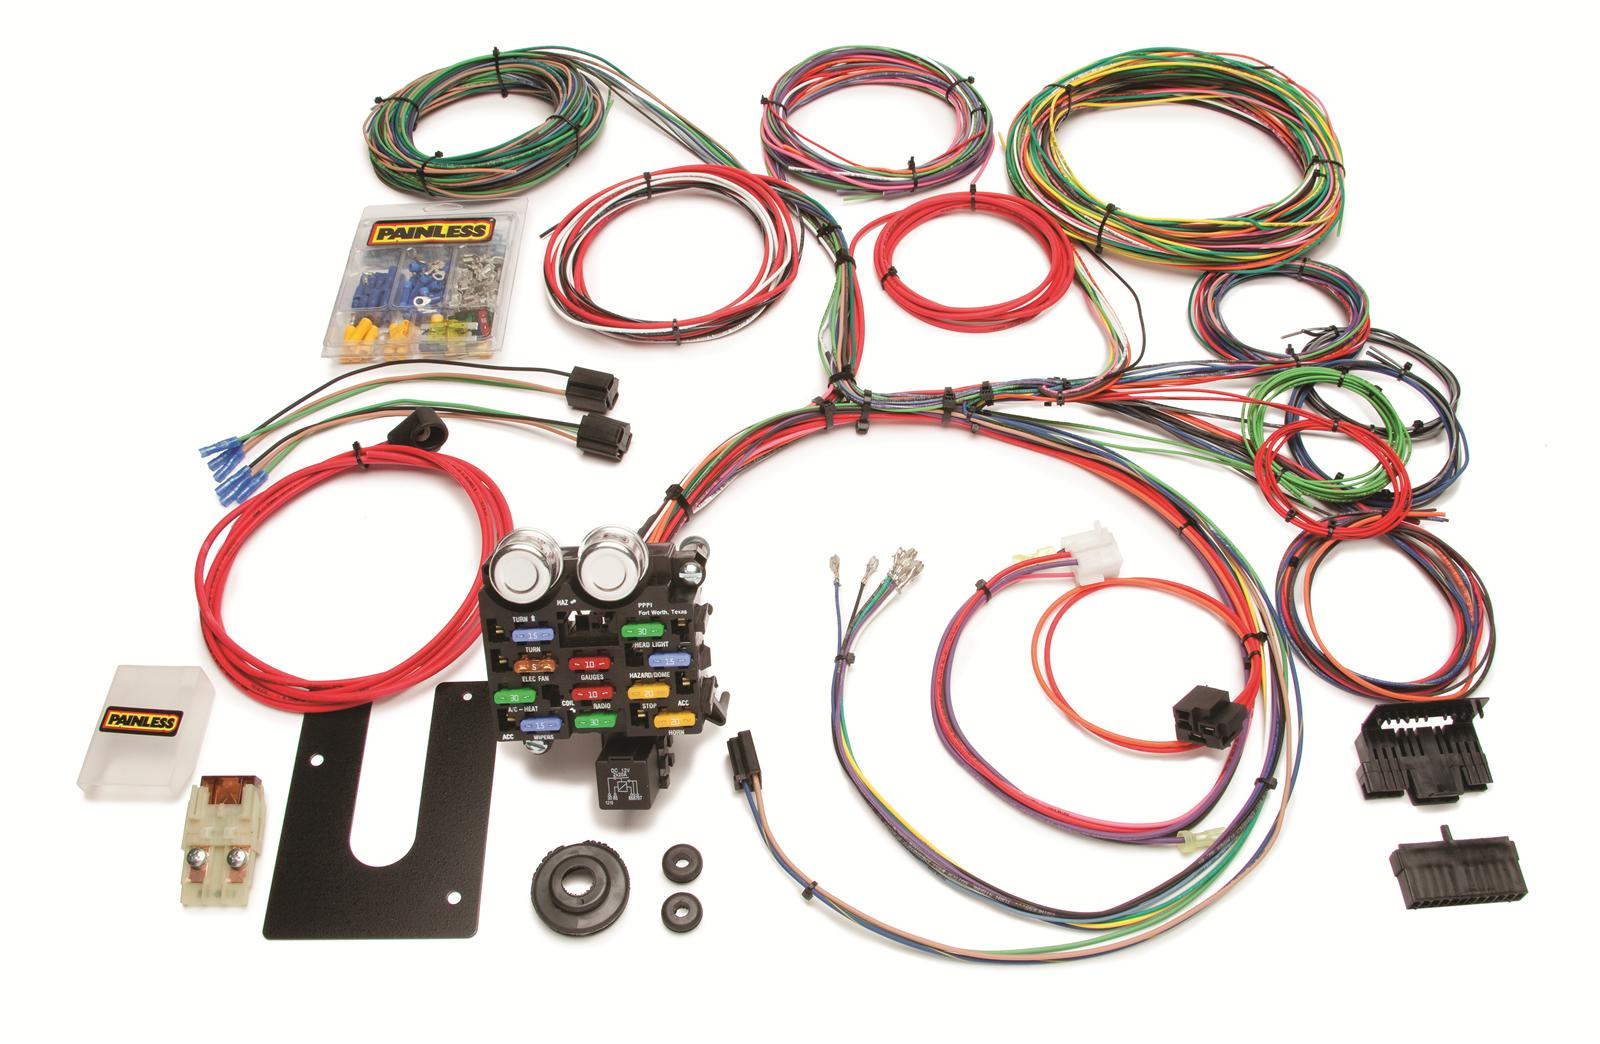 prf 10101_xl painless performance 21 circuit universal harnesses 10101 free painless hot rod wiring harness kits at readyjetset.co